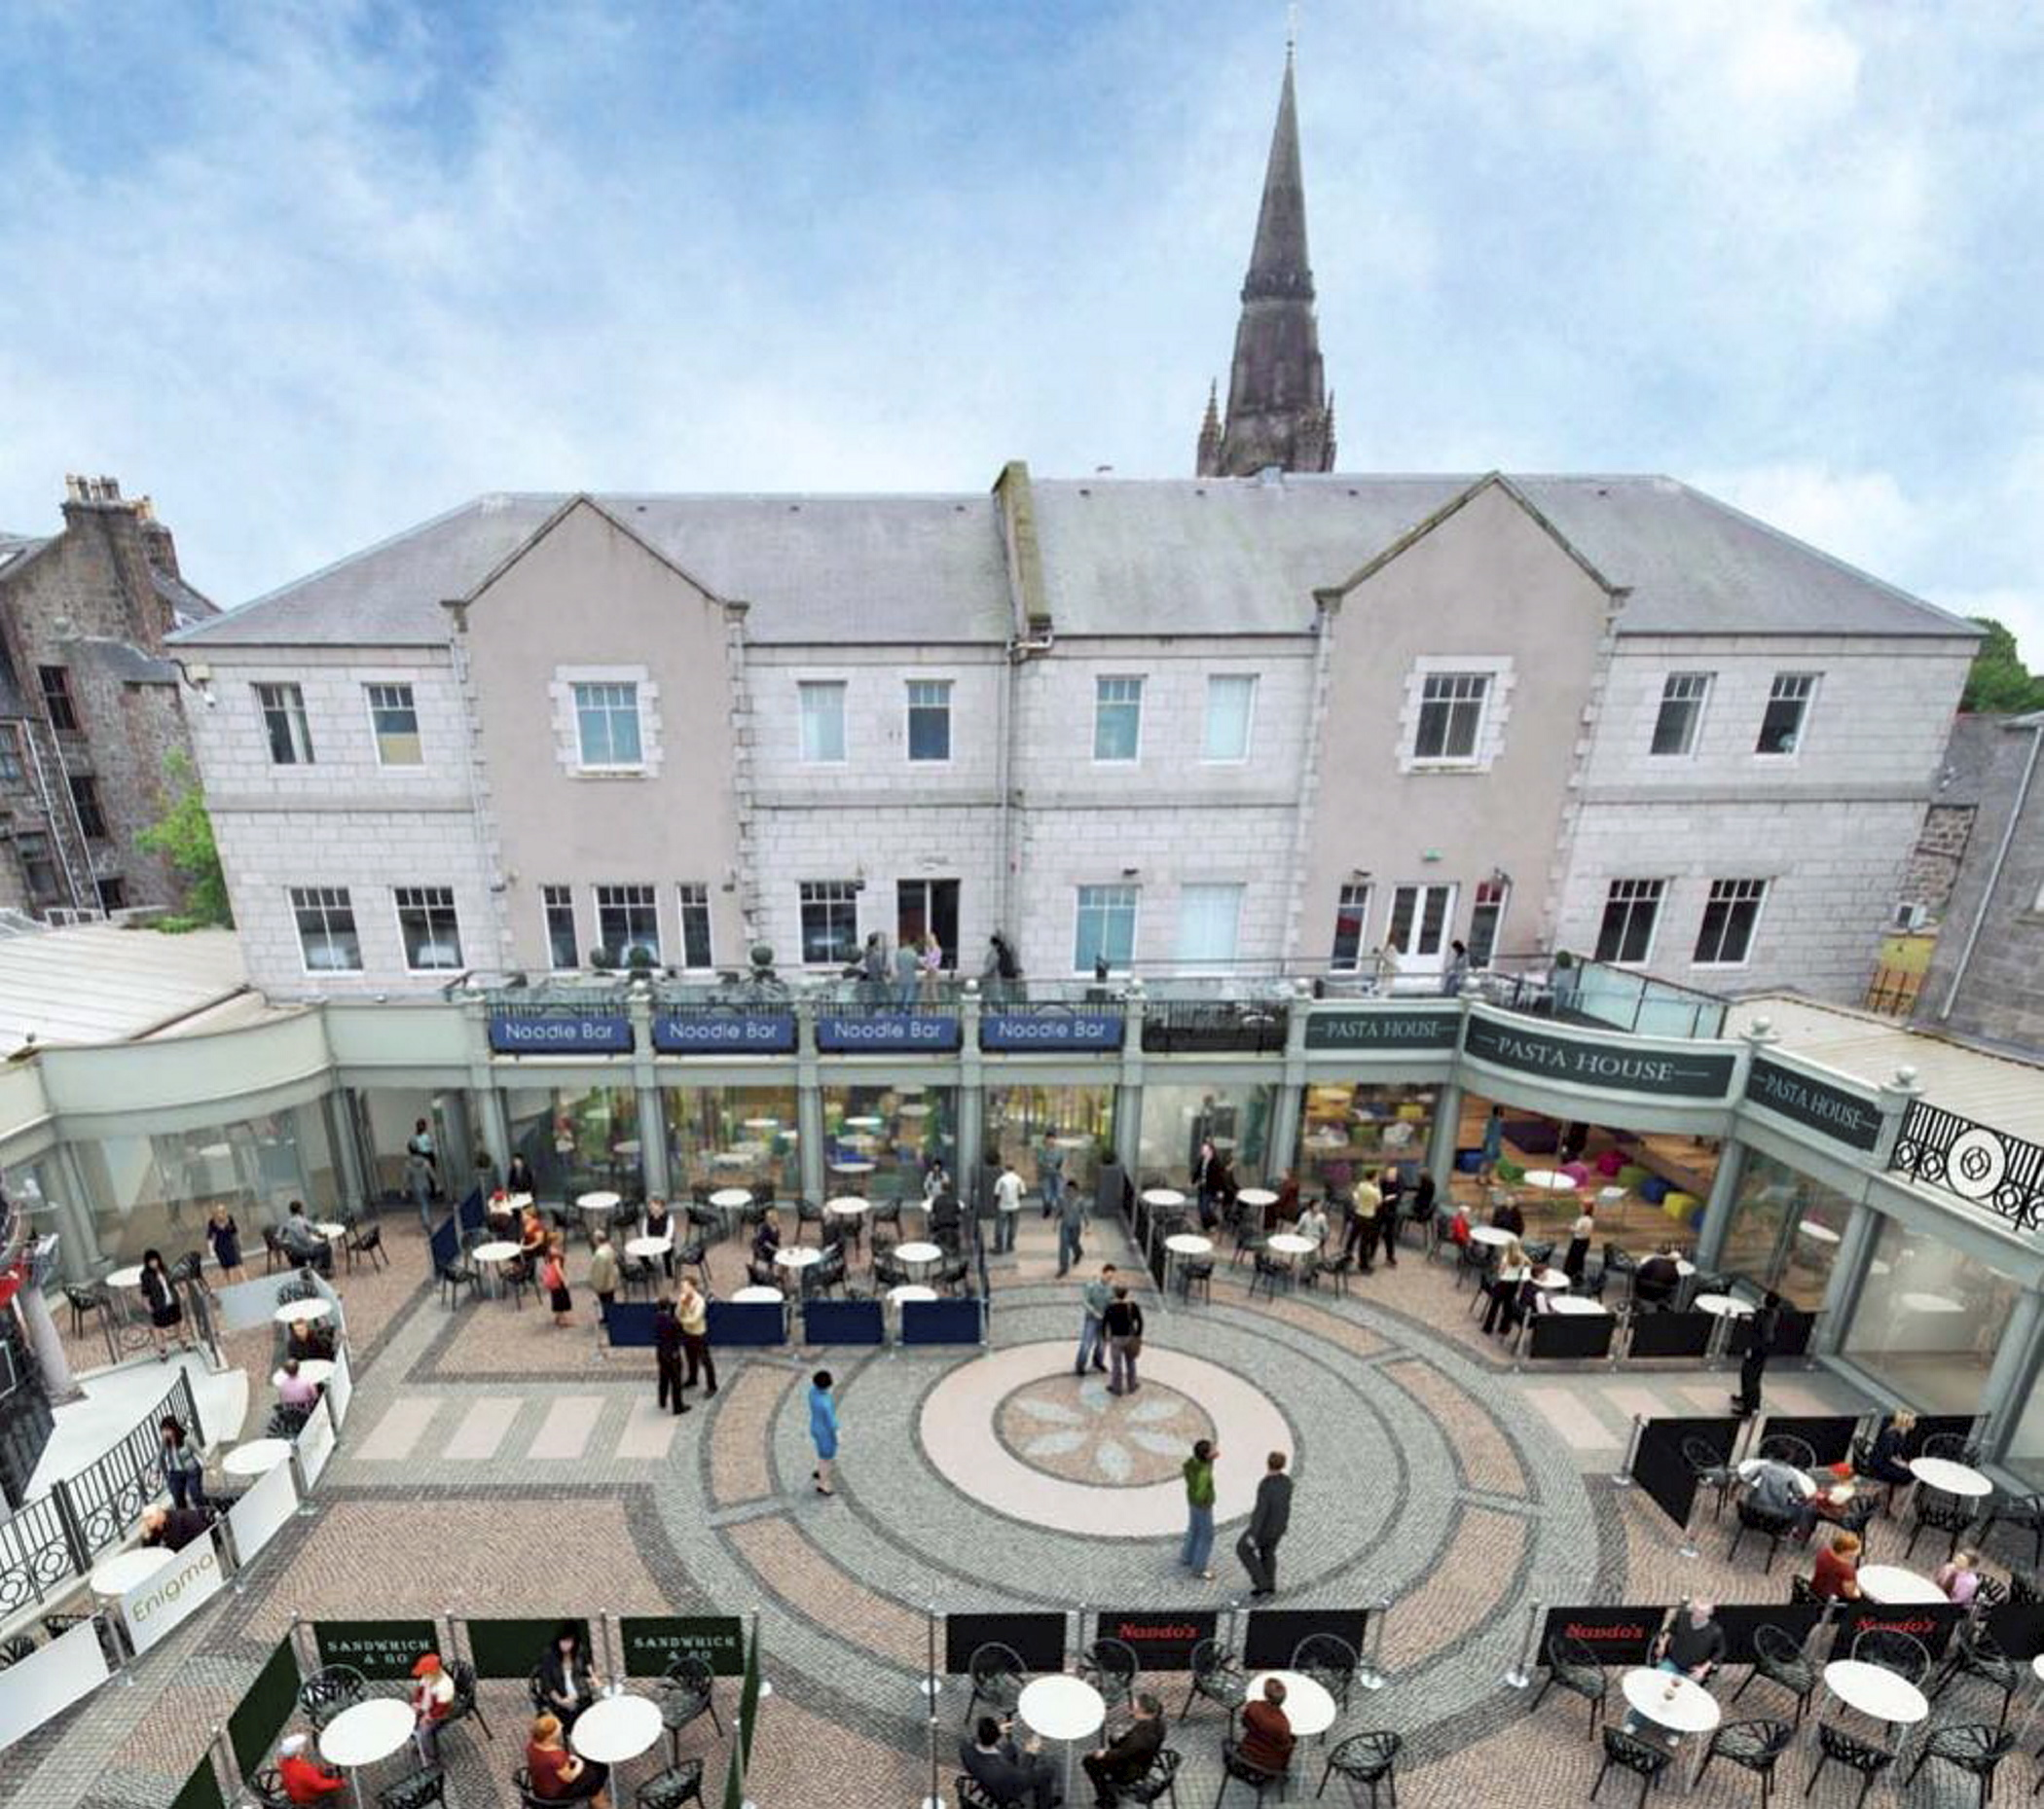 An artist's impression of the planned changes to the Academy Shopping Centre.